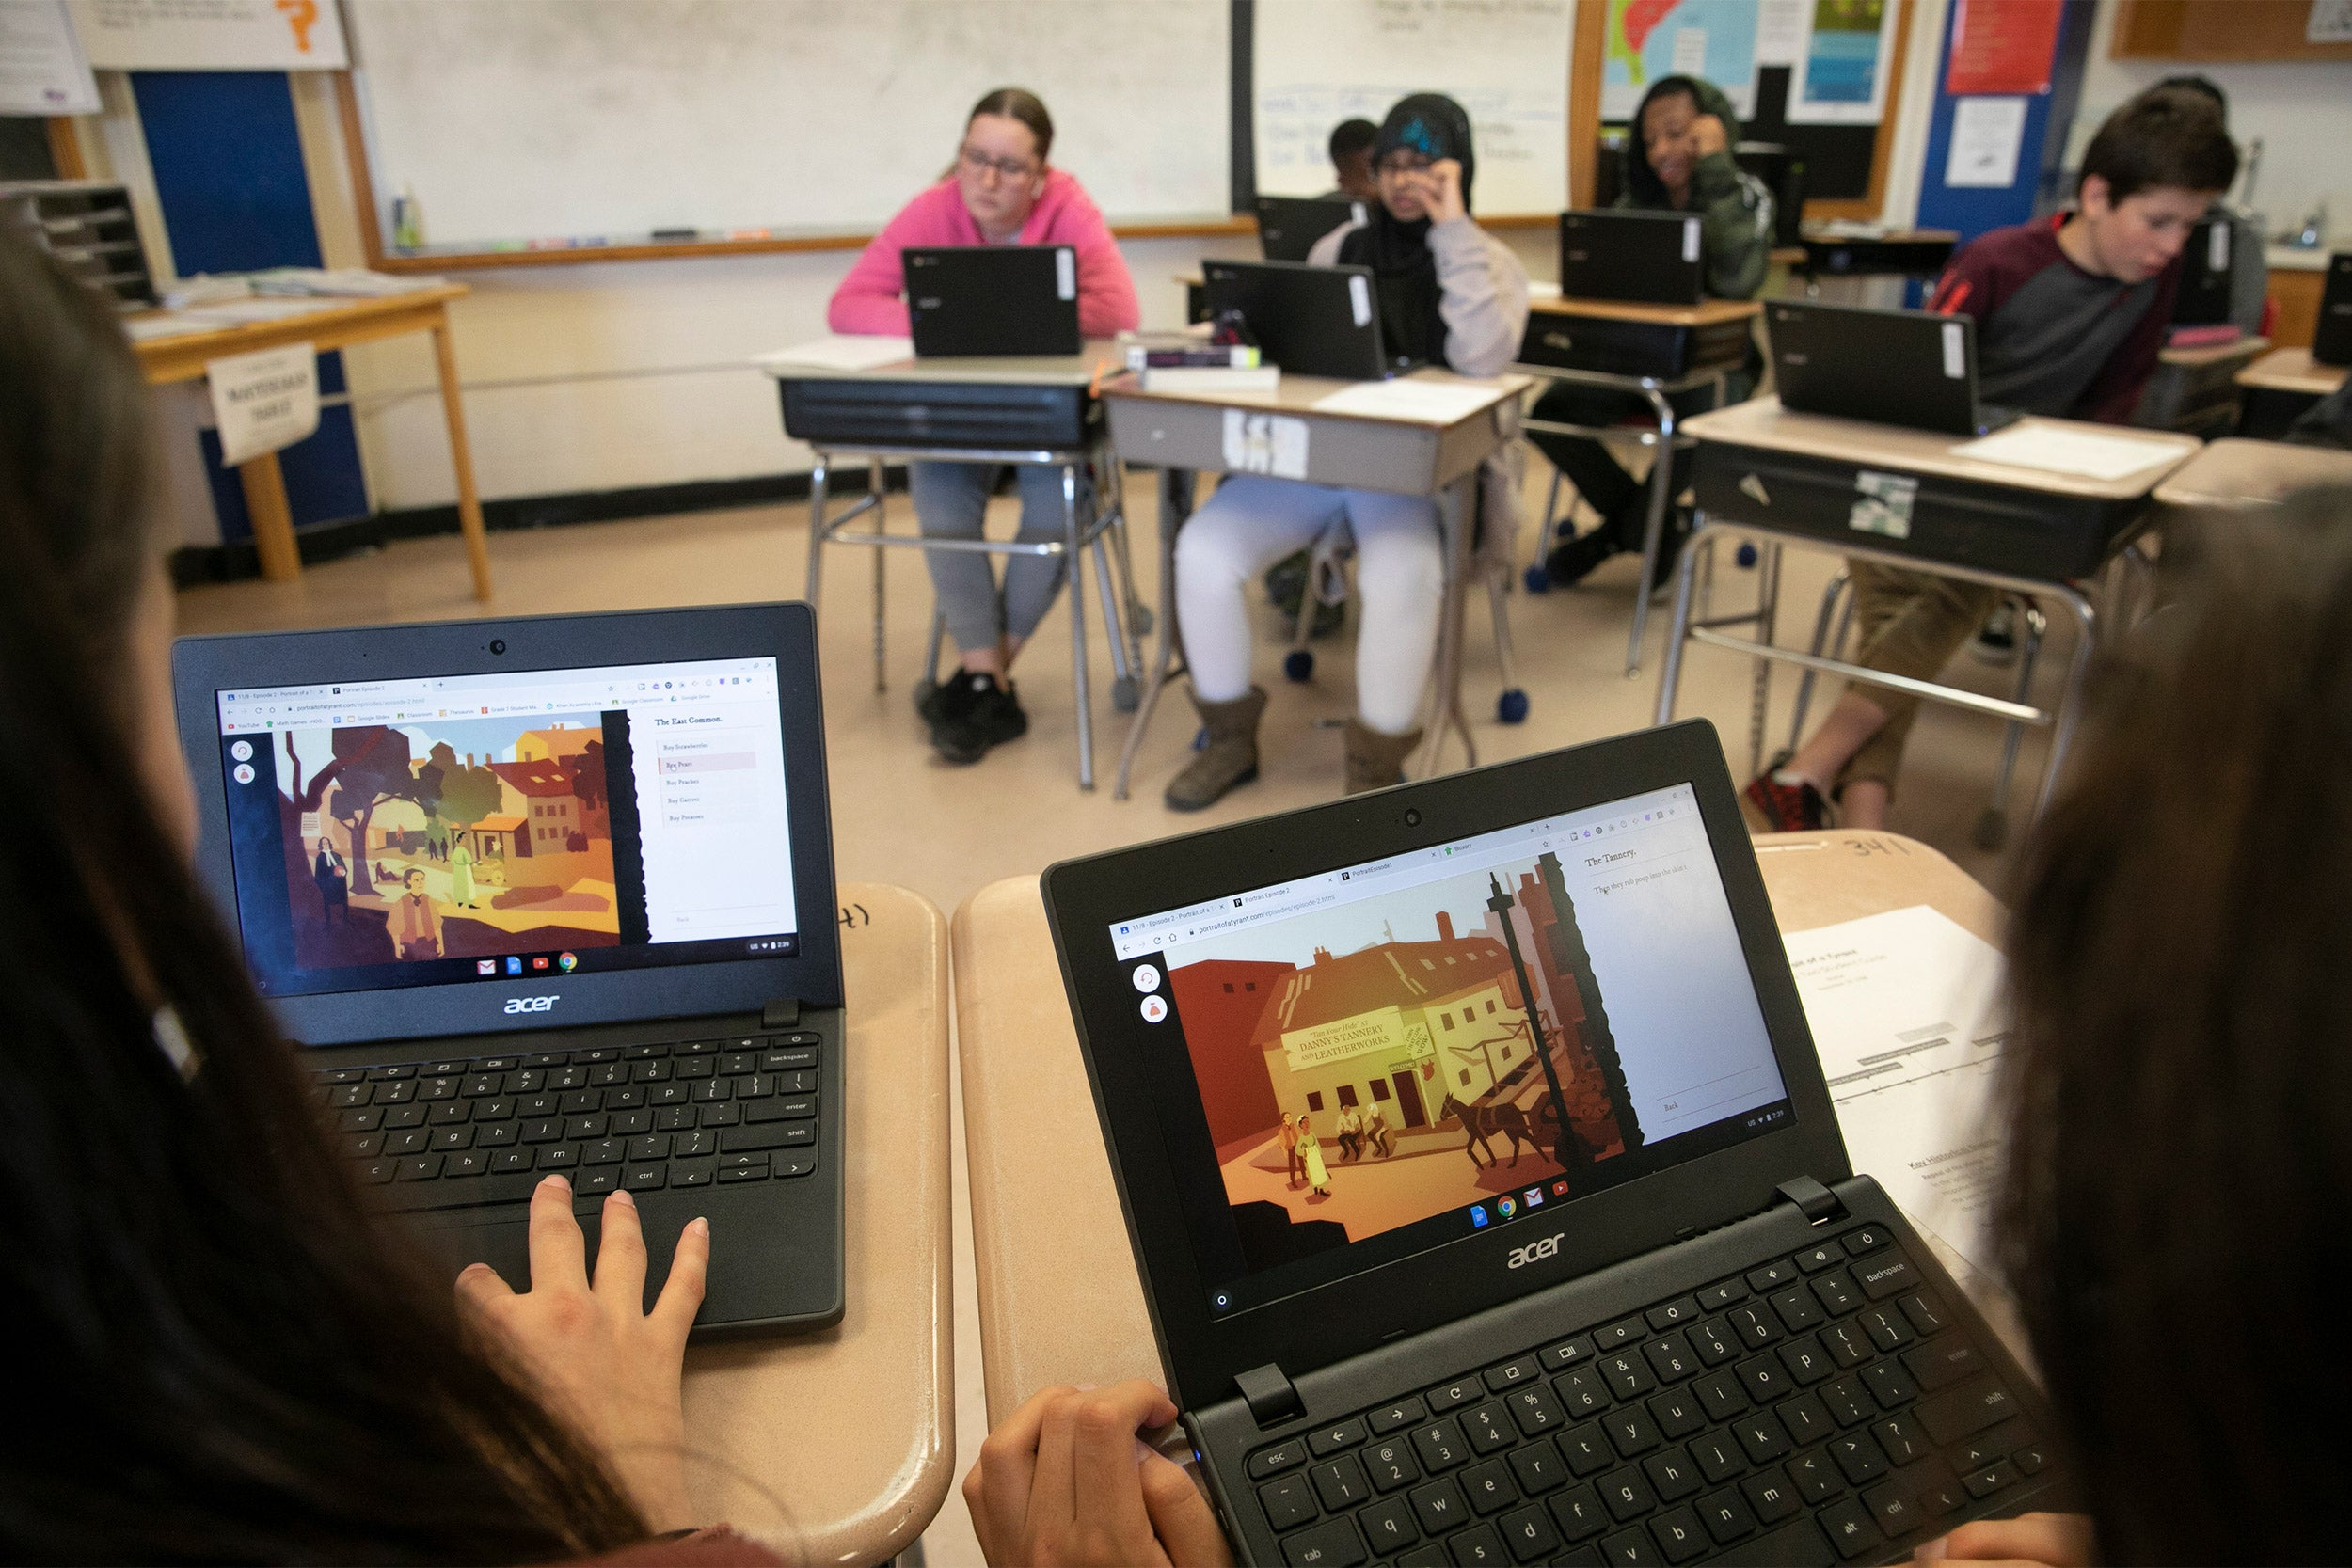 Students in classroom with computers.